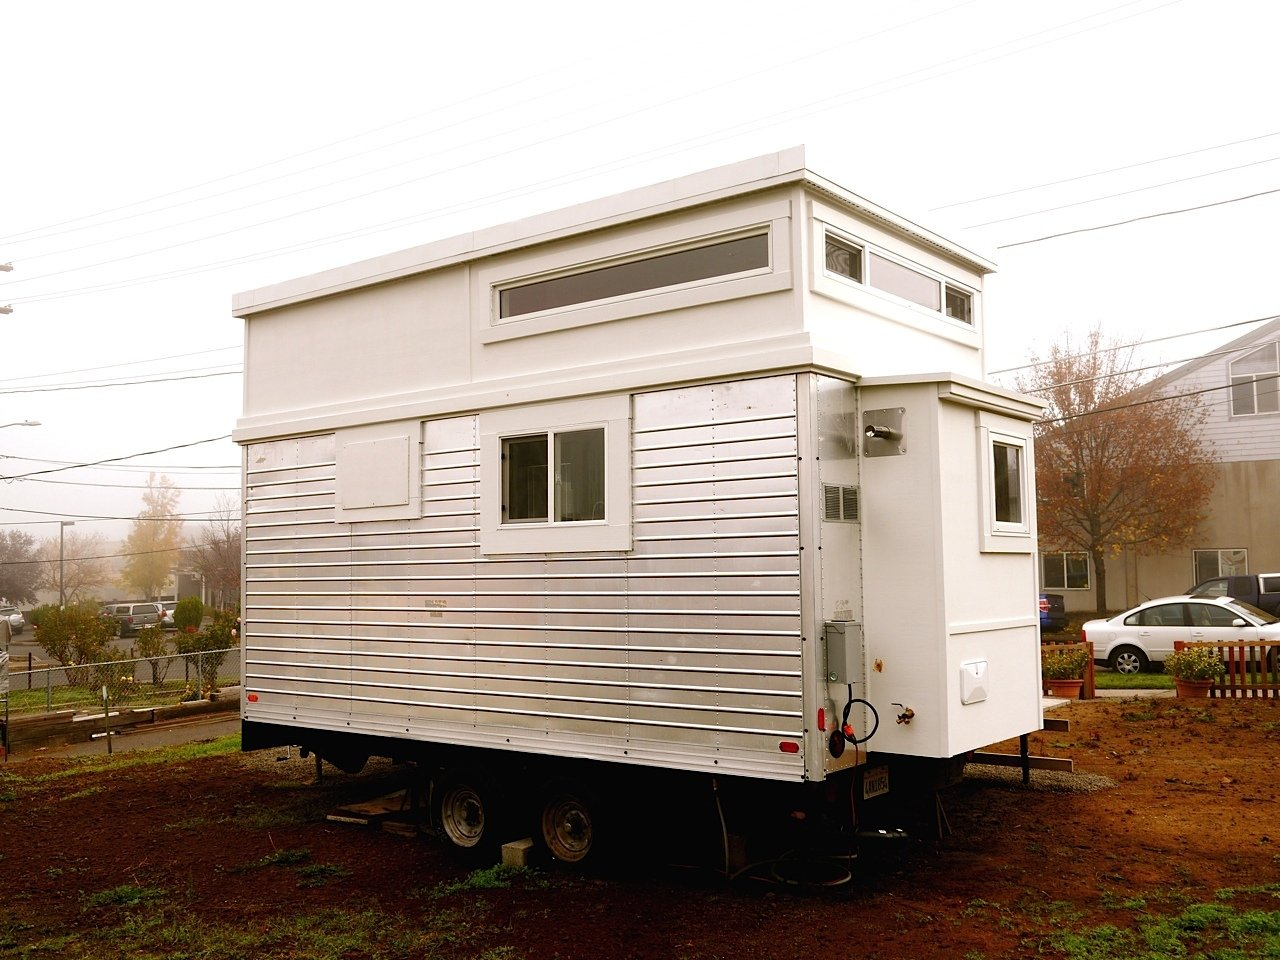 240 Sq Ft Tiny Cottage Remodel Before After: TINY HOUSE TOWN: Trailer Turned Tiny House (200 Sq Ft